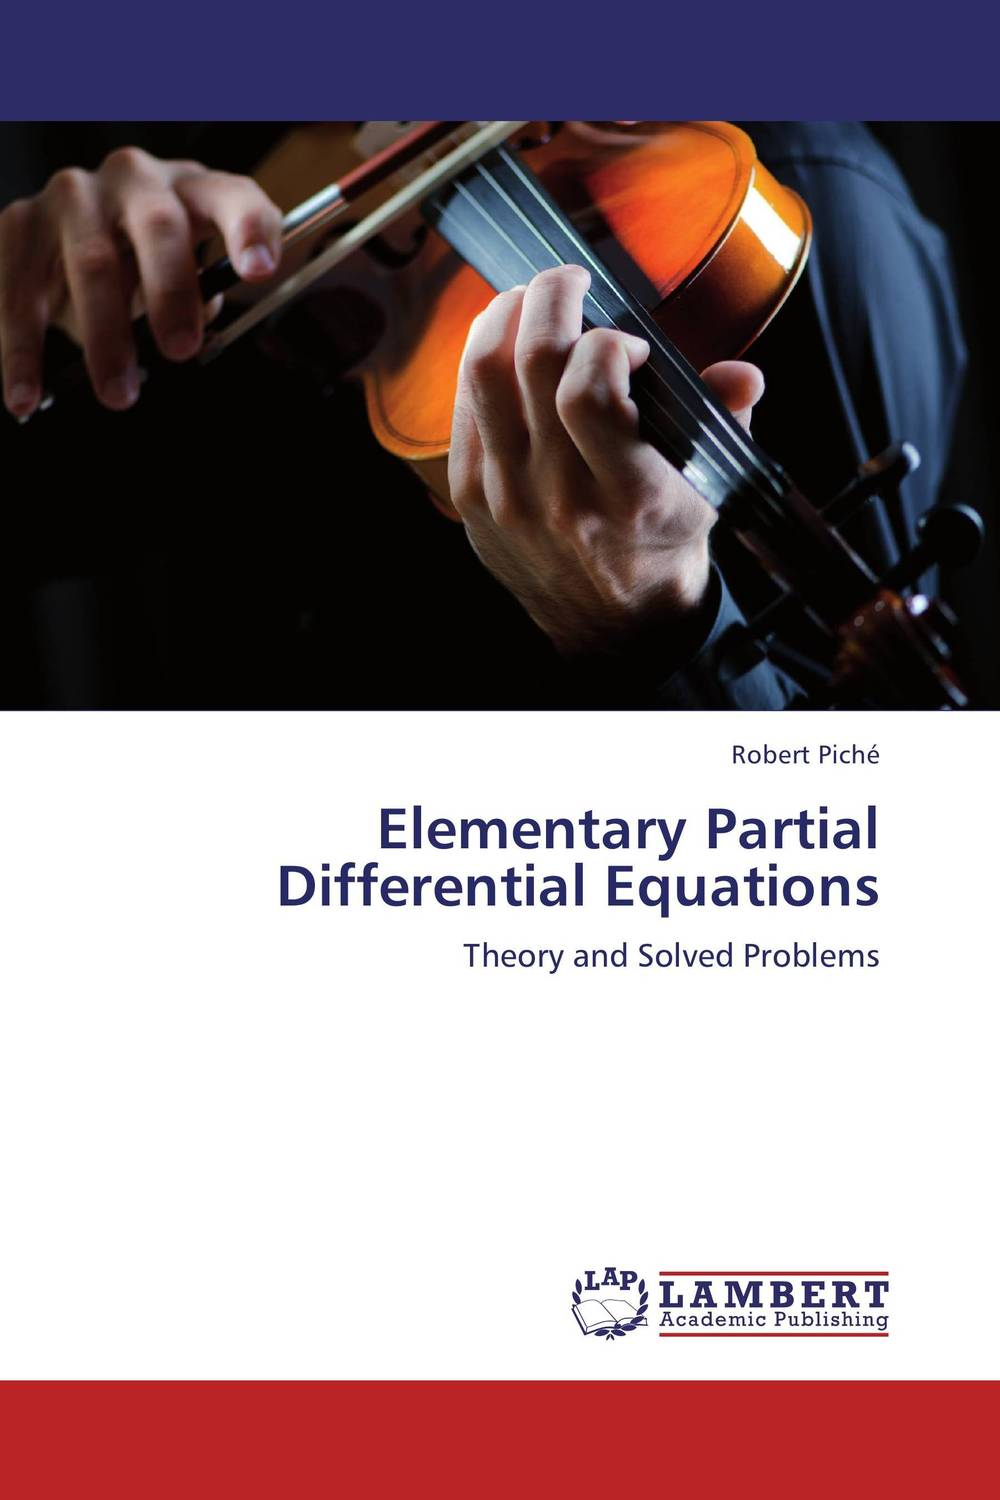 Elementary Partial Differential Equations collocation methods for volterra integral and related functional differential equations